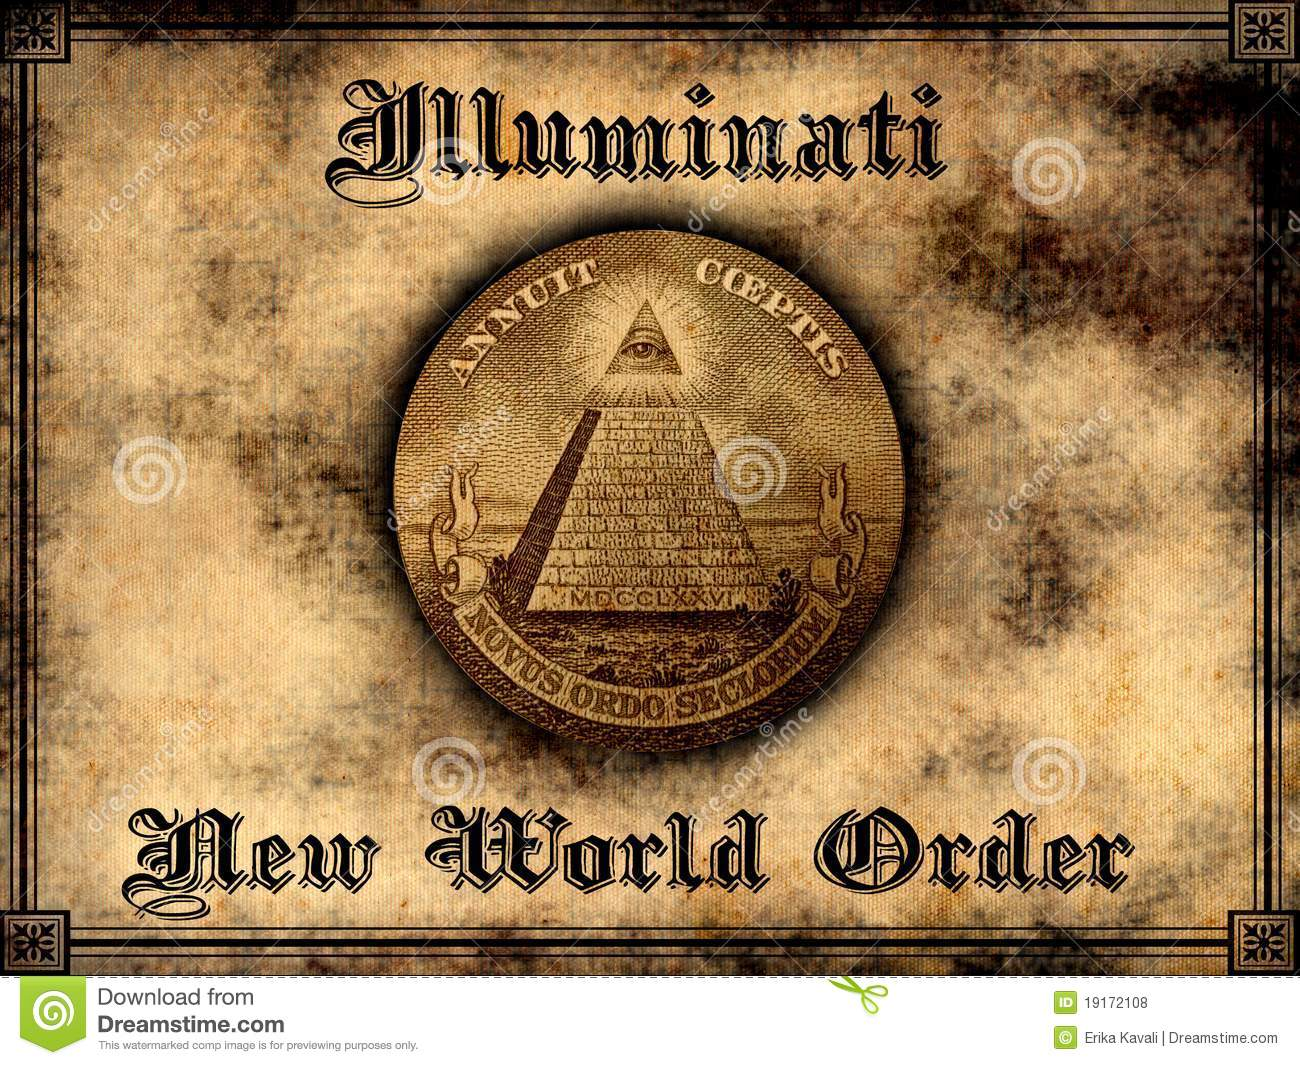 Illuminati stock image image of lucre bill closeup 59690523 illuminati new world order royalty free stock photos biocorpaavc